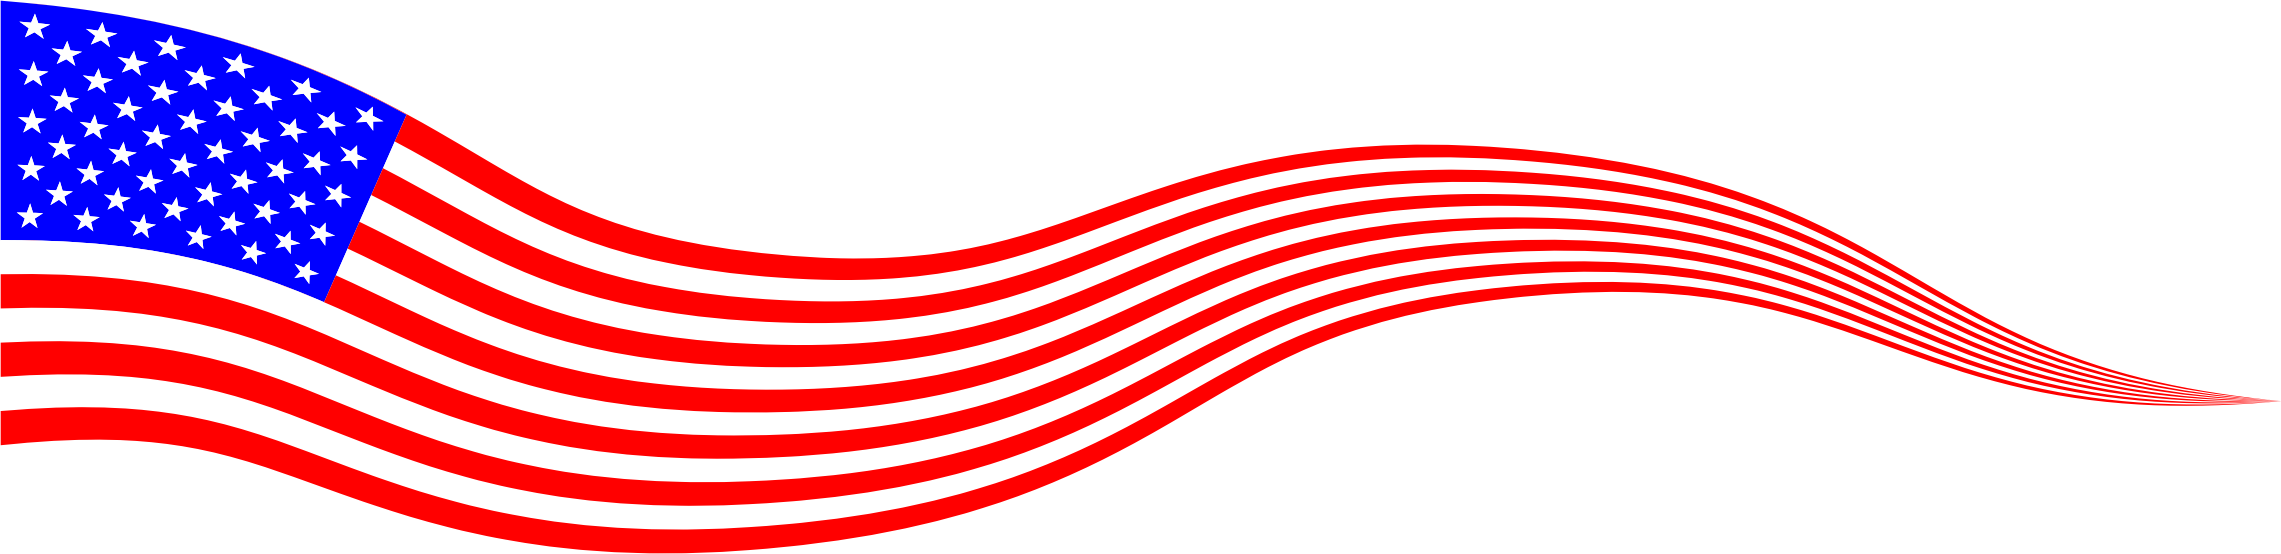 American flag banner png. Wavy usa by gdj